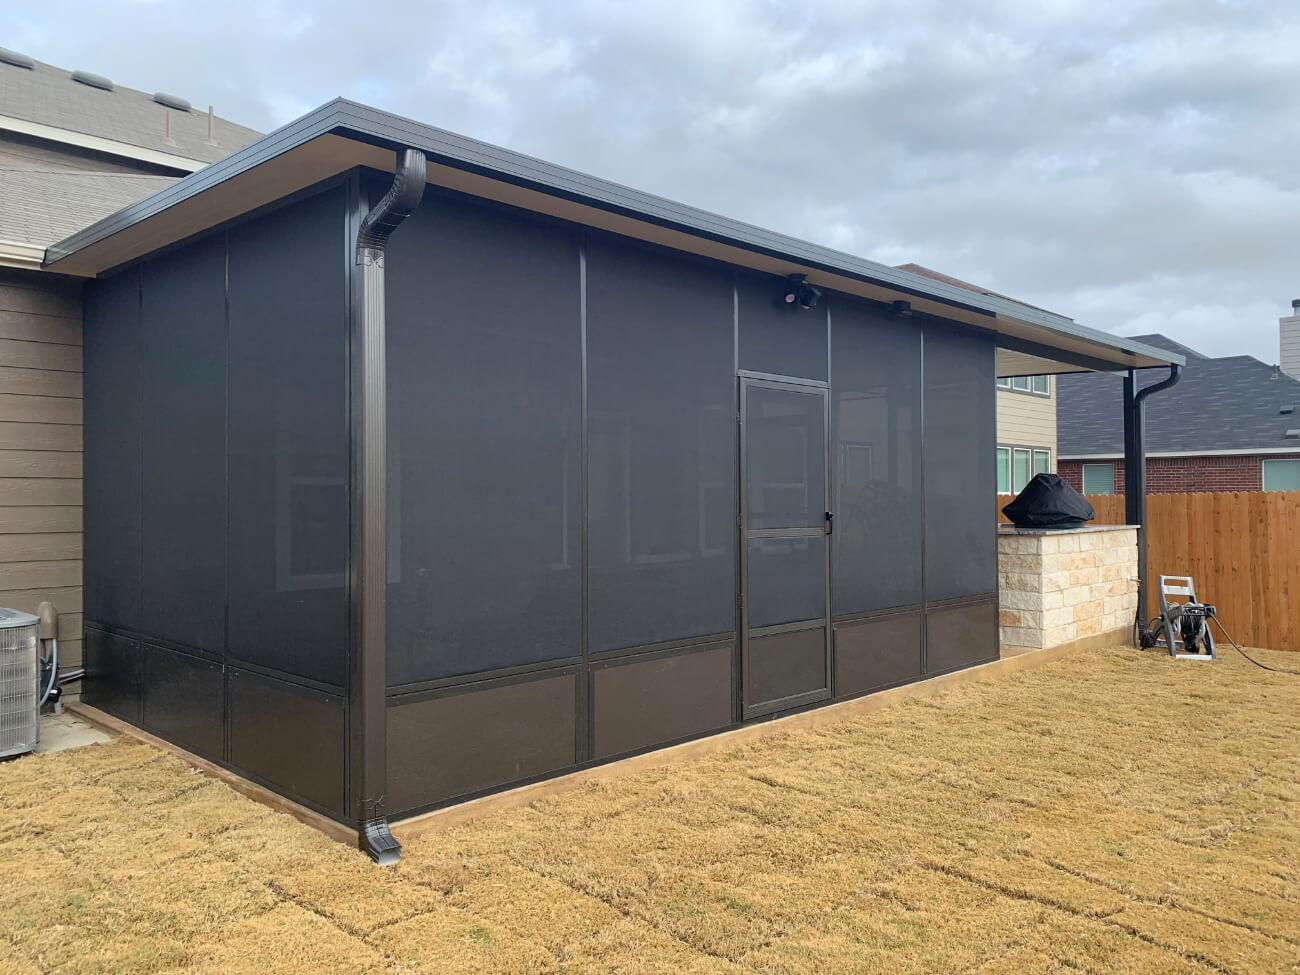 A patio enclosure with screens and a flush screen door leading into the enclosure.